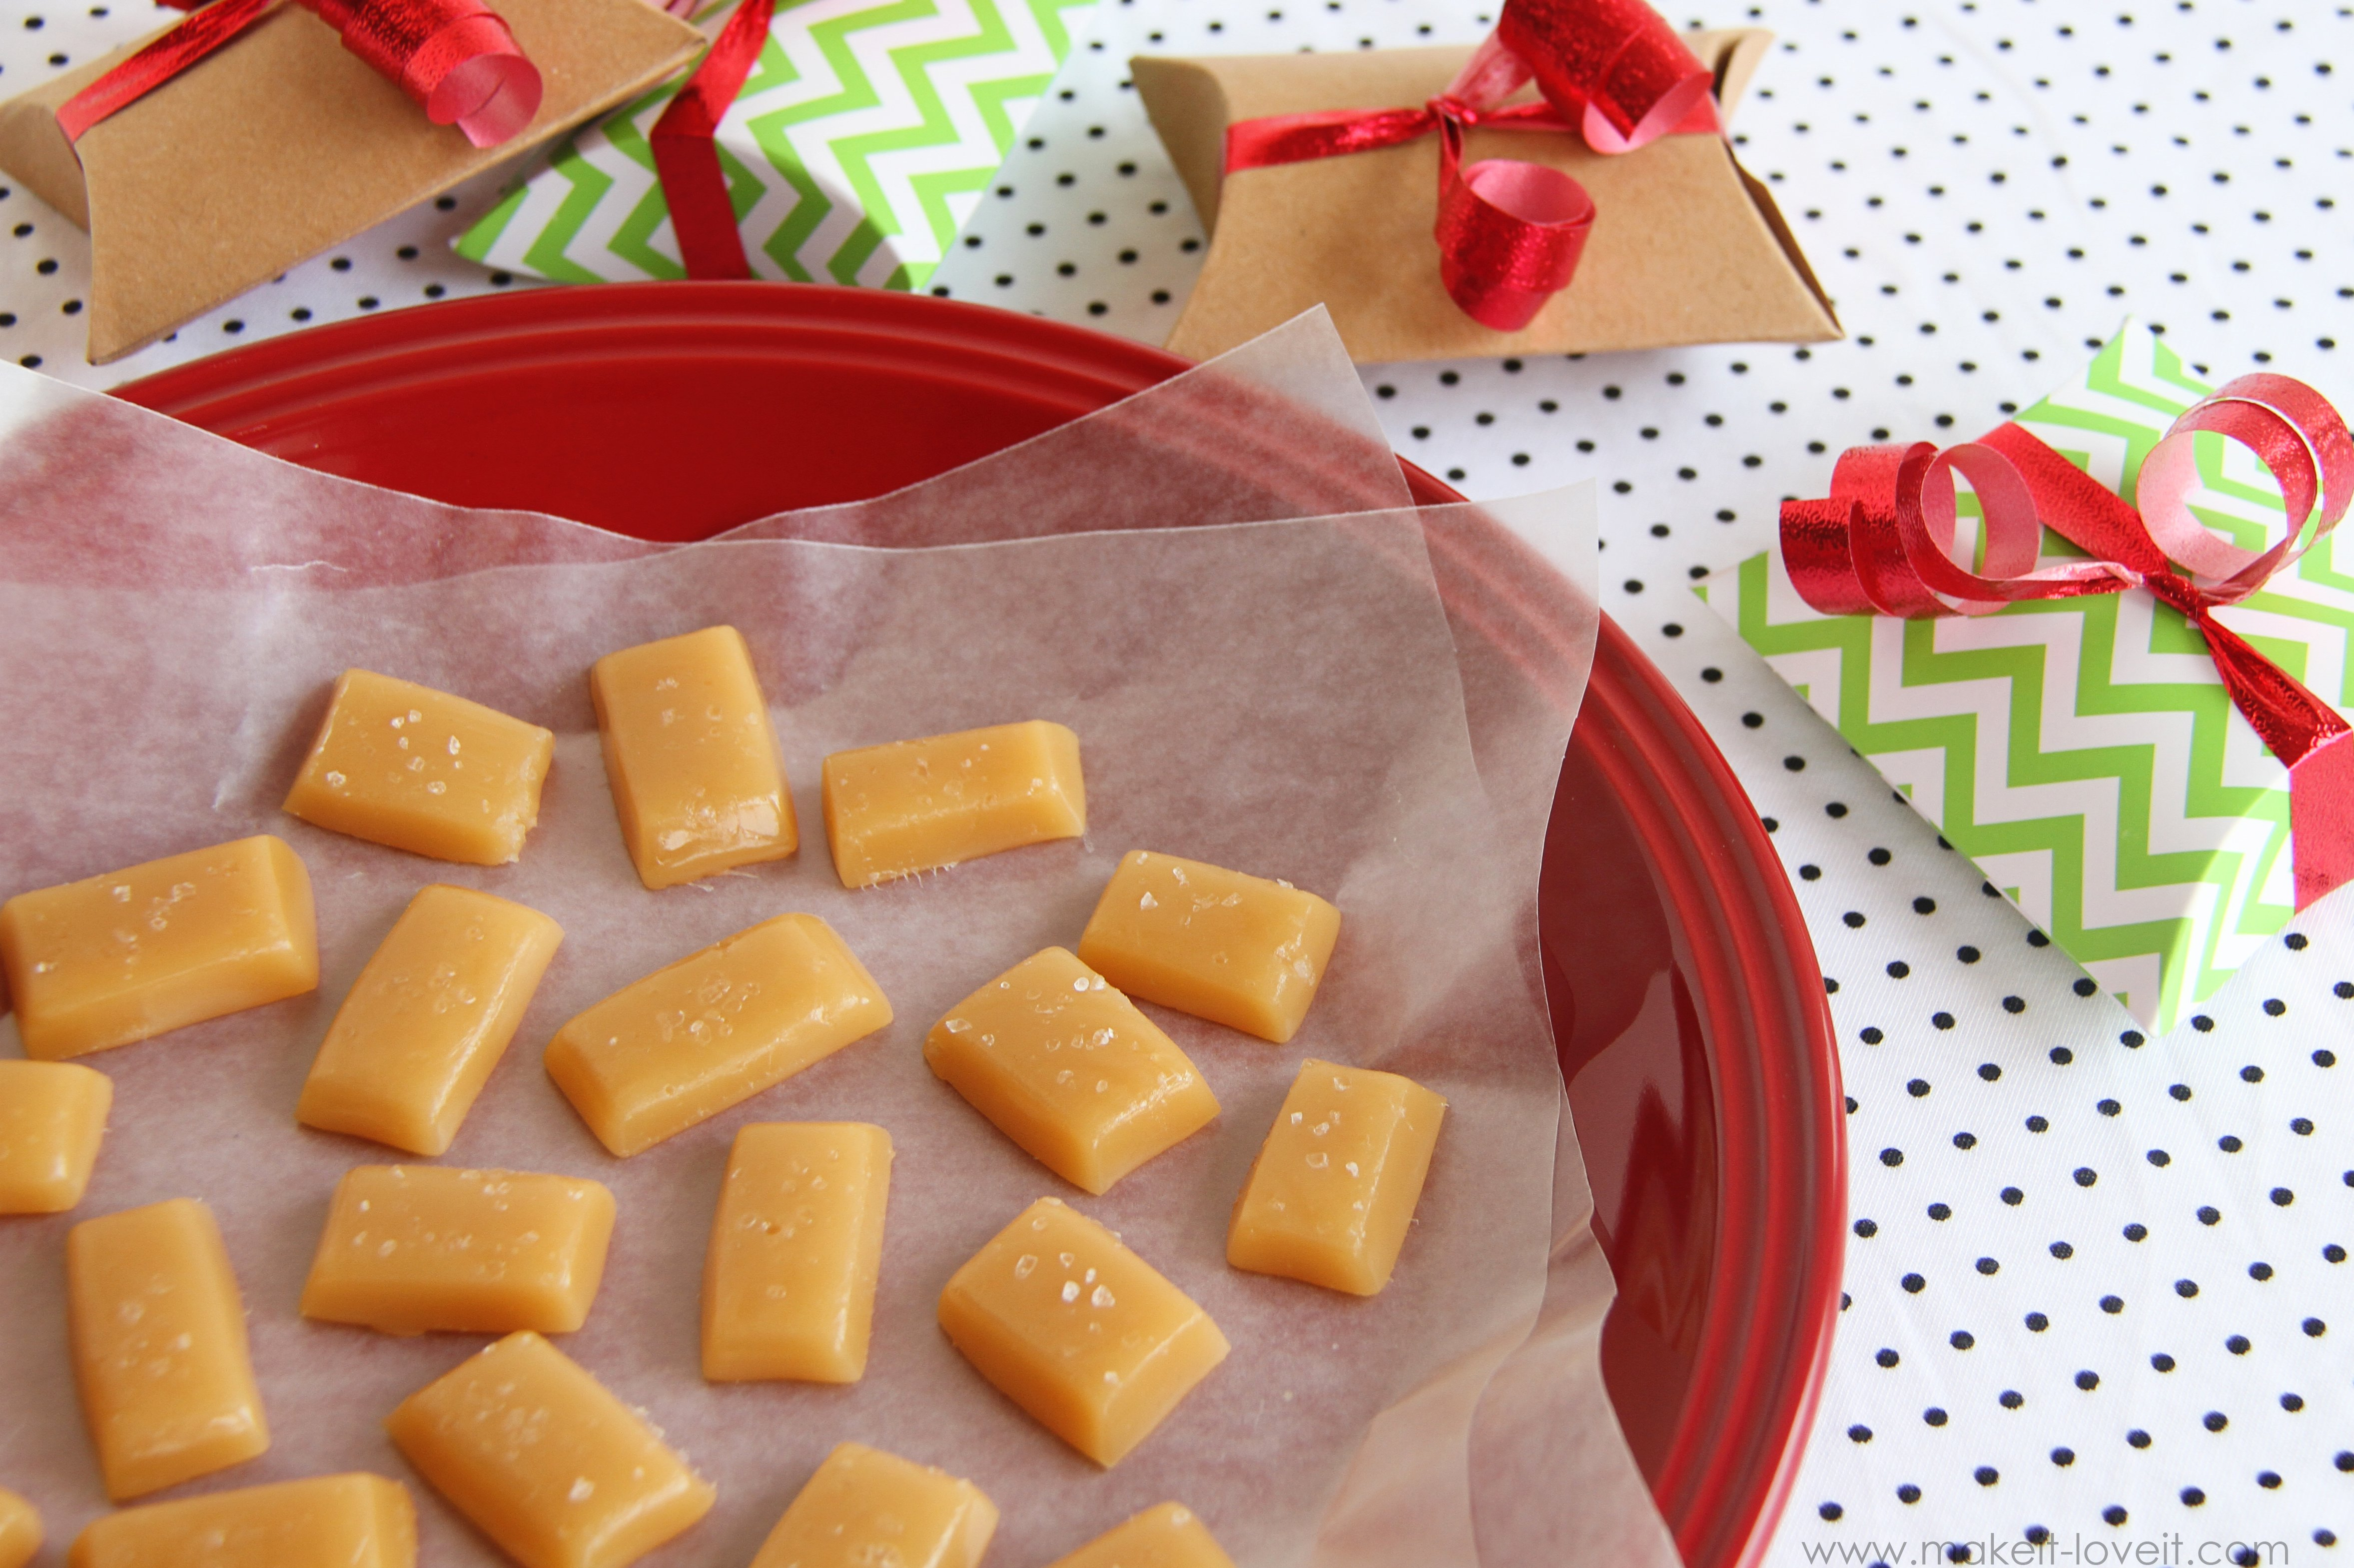 Chewy & Creamy MICROWAVABLE Caramels…Yum!